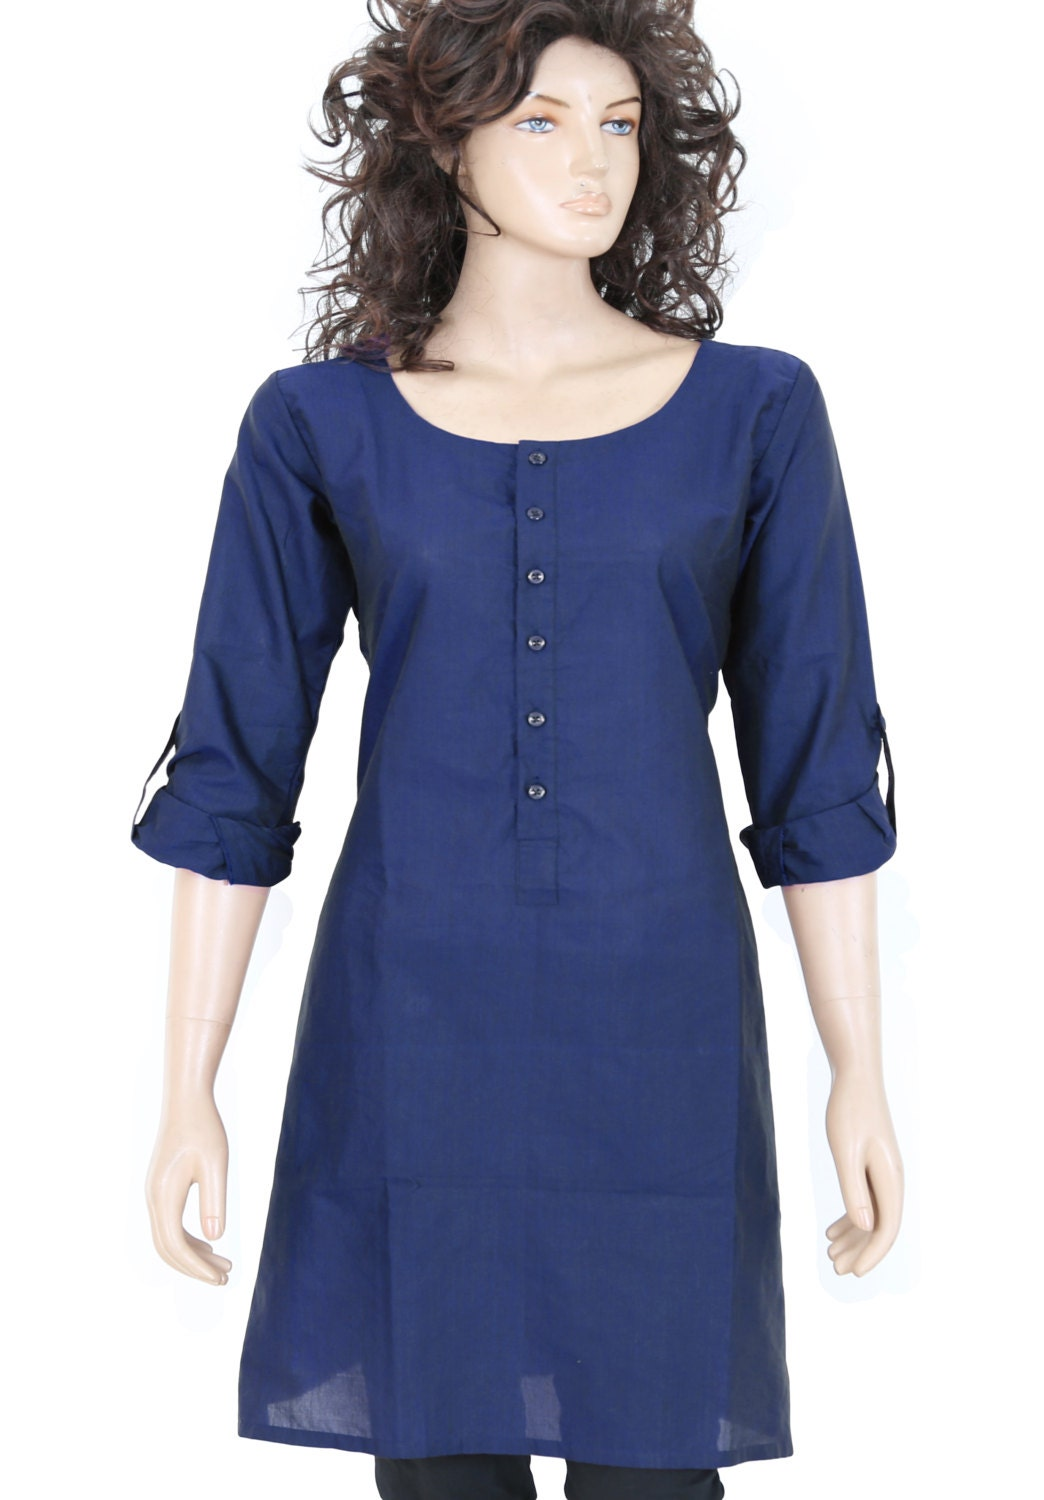 Find great deals on eBay for cotton tunic. Shop with confidence.